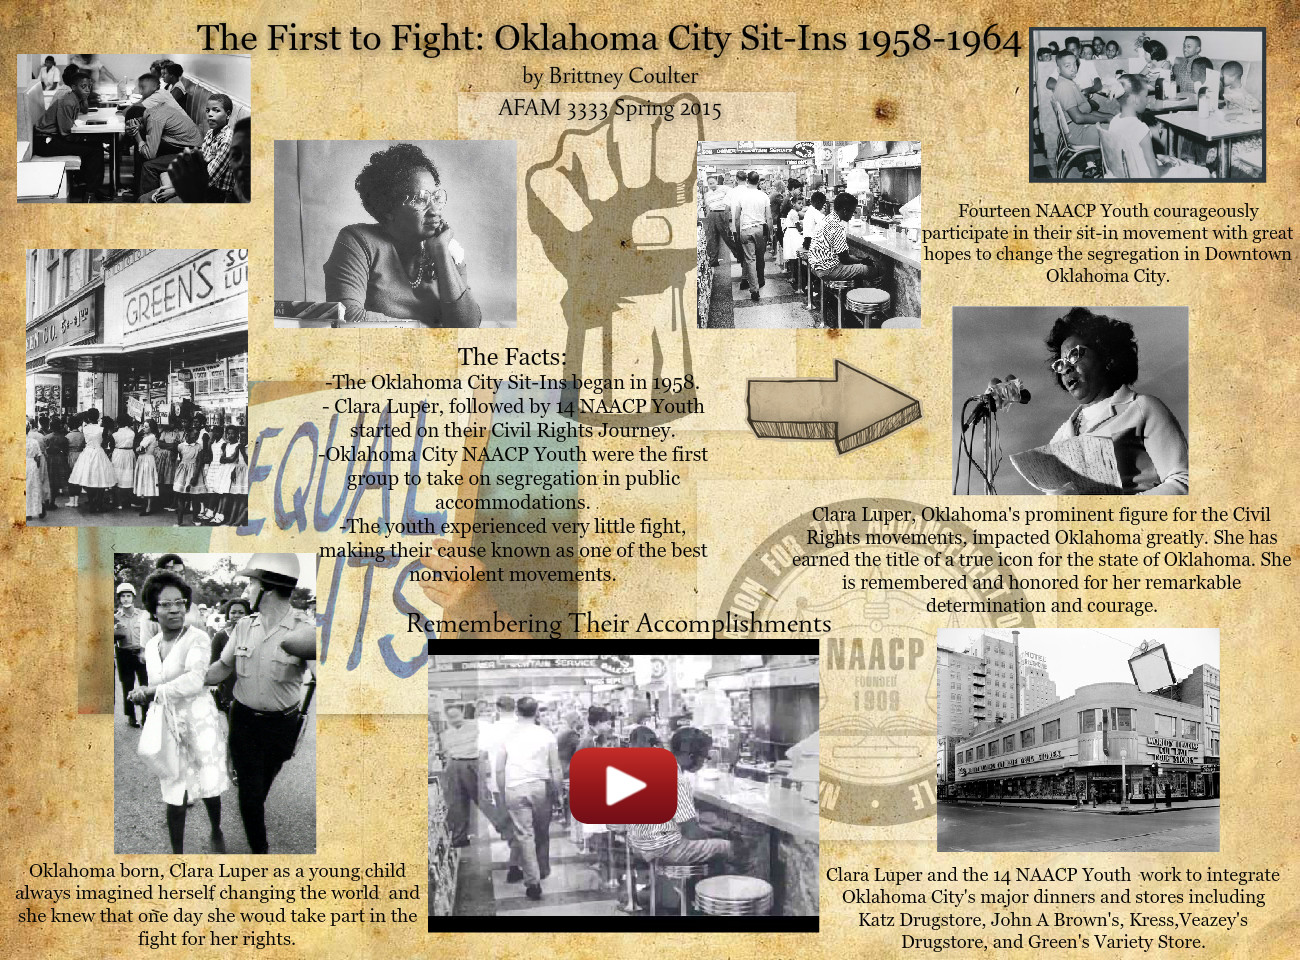 [2015] Brittney Coulter: The First to Fight: Oklahoma City